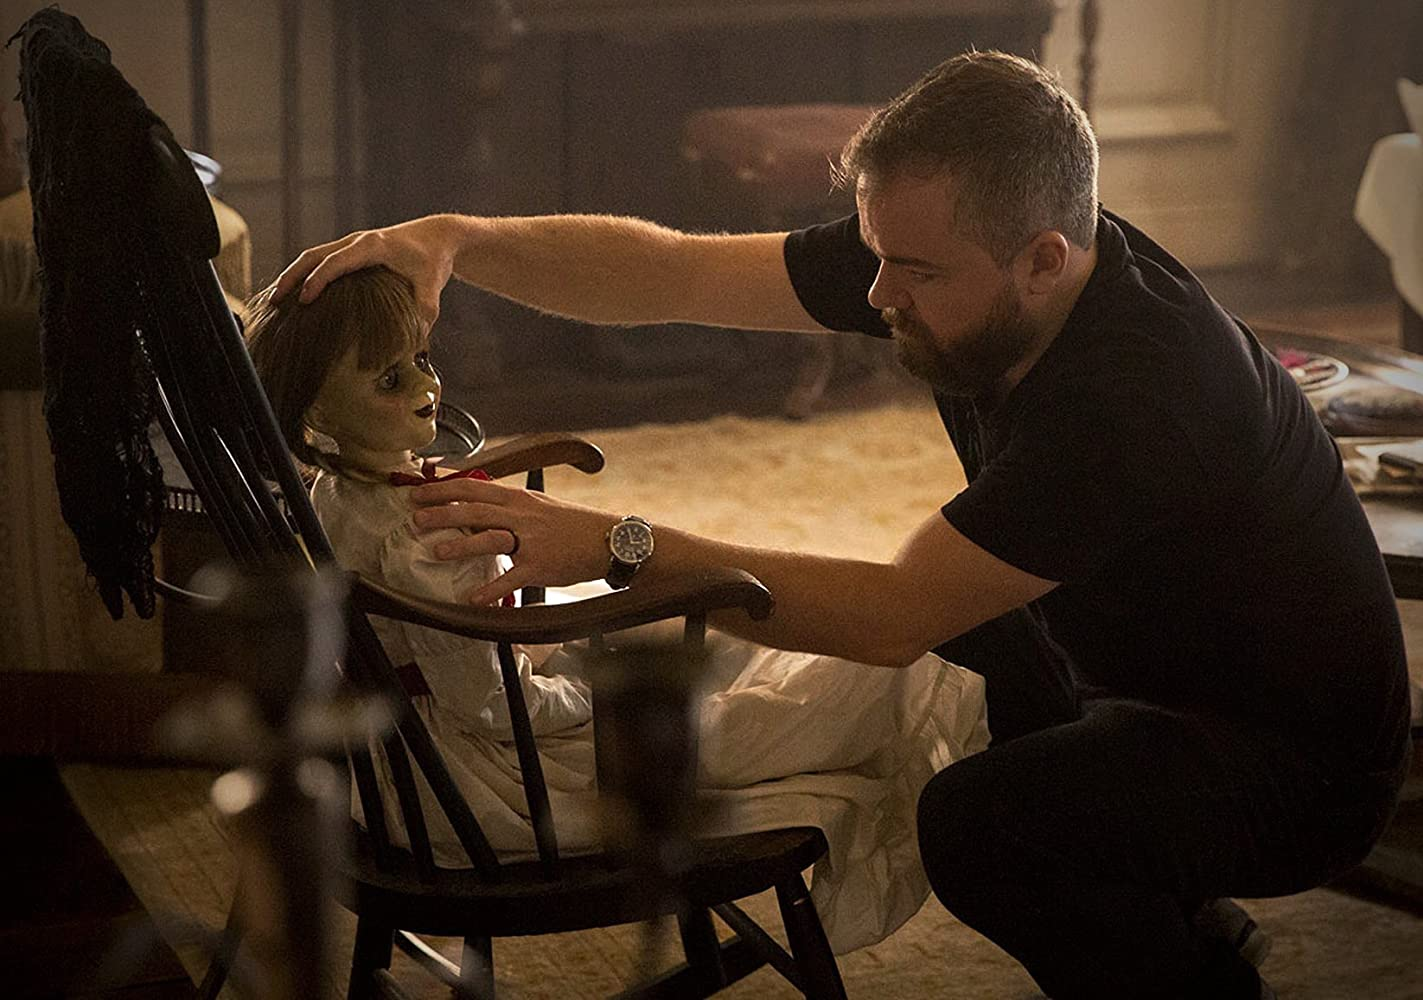 David F. Sandberg in Annabelle: Creation (2017)